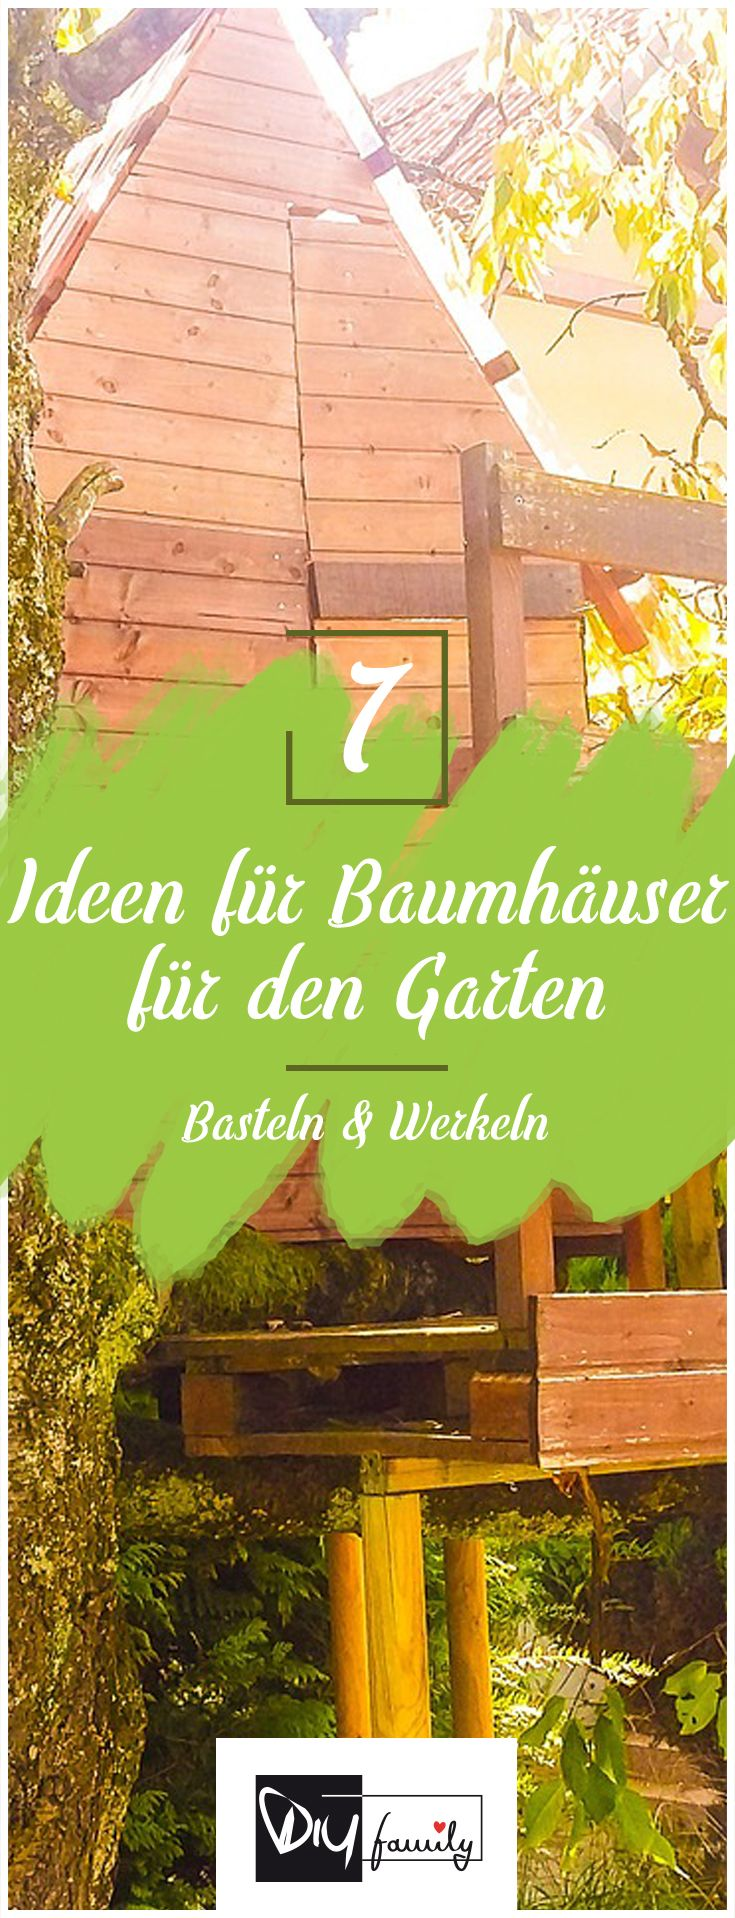 25+ Best Ideas About Kinder Baumhaus On Pinterest ... Baumhaus Bauen 20 Ideen Welt